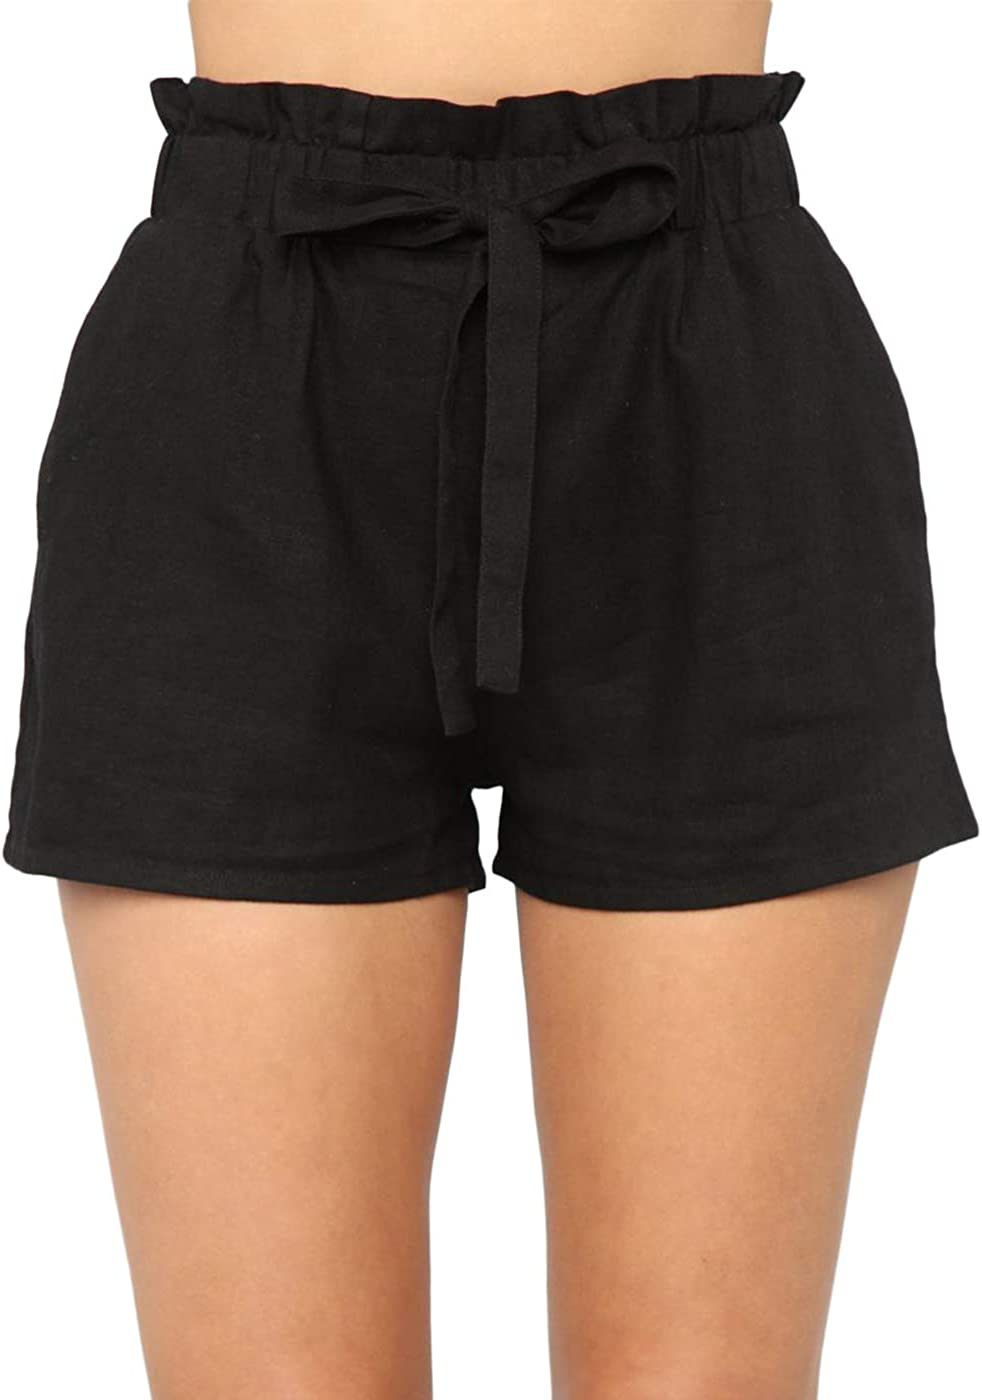 Charlotte Mall Yissang Women's Casual Loose Paper Max 82% OFF Bag with Bow Tie Waist Shorts